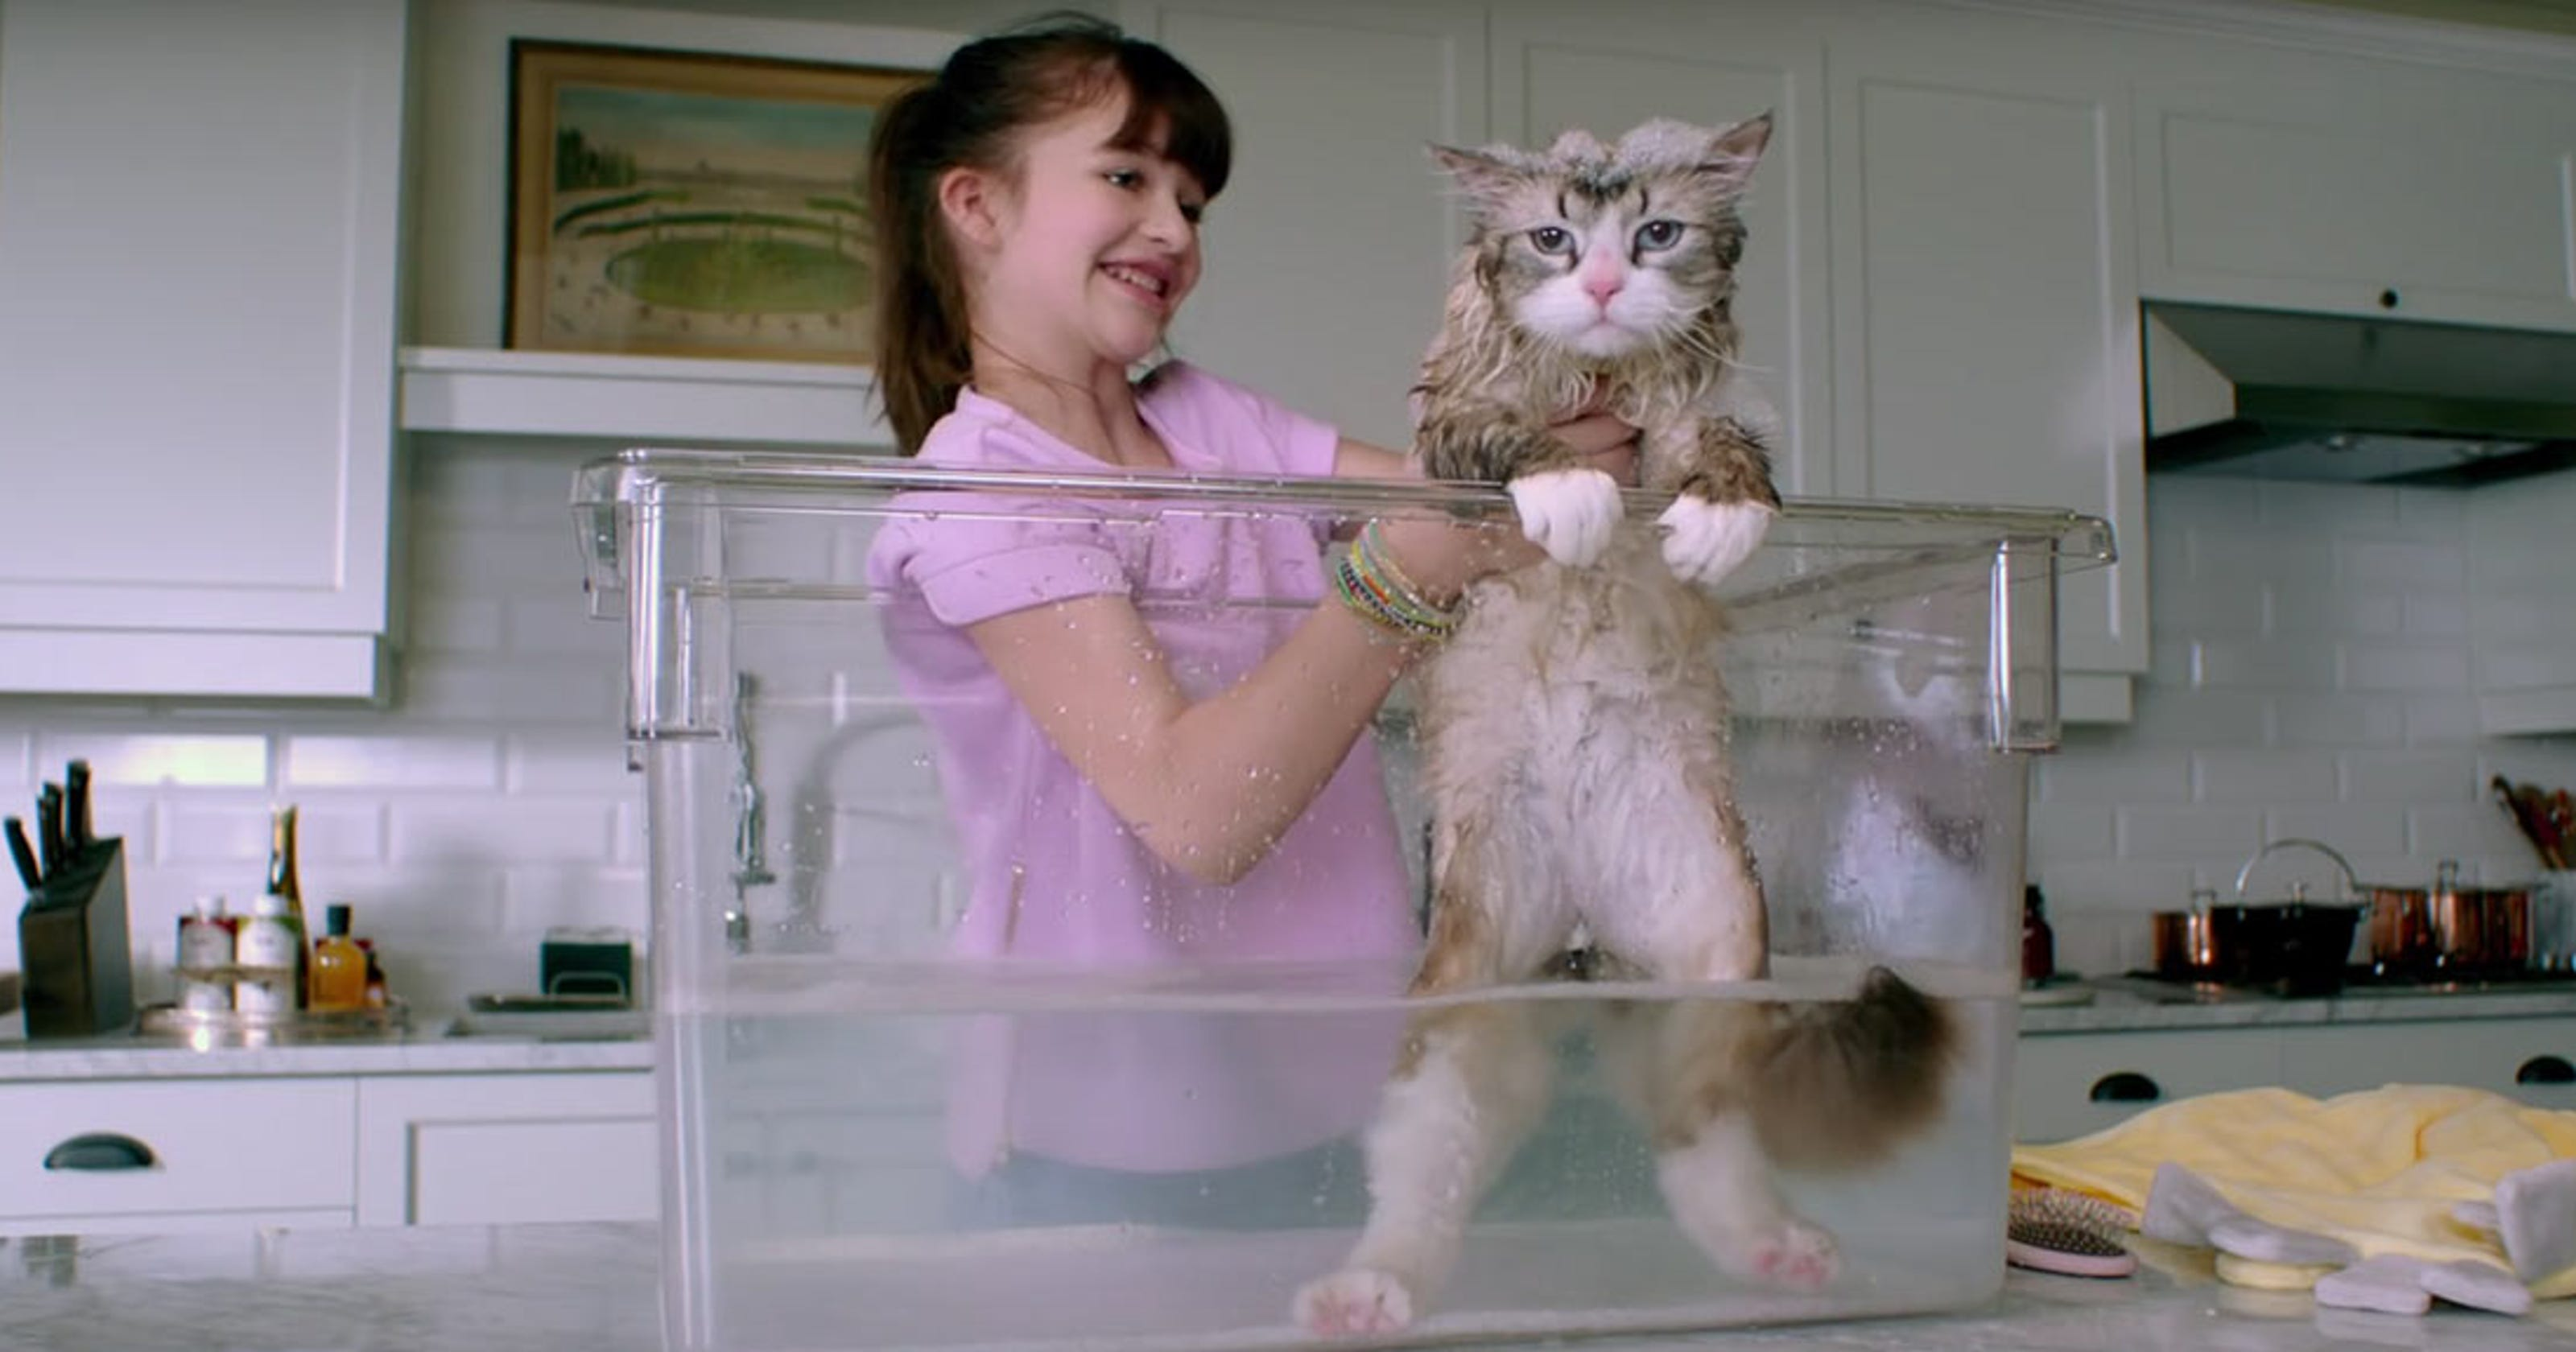 Review: Kids will enjoy \'Nine Lives,\' but adults beware